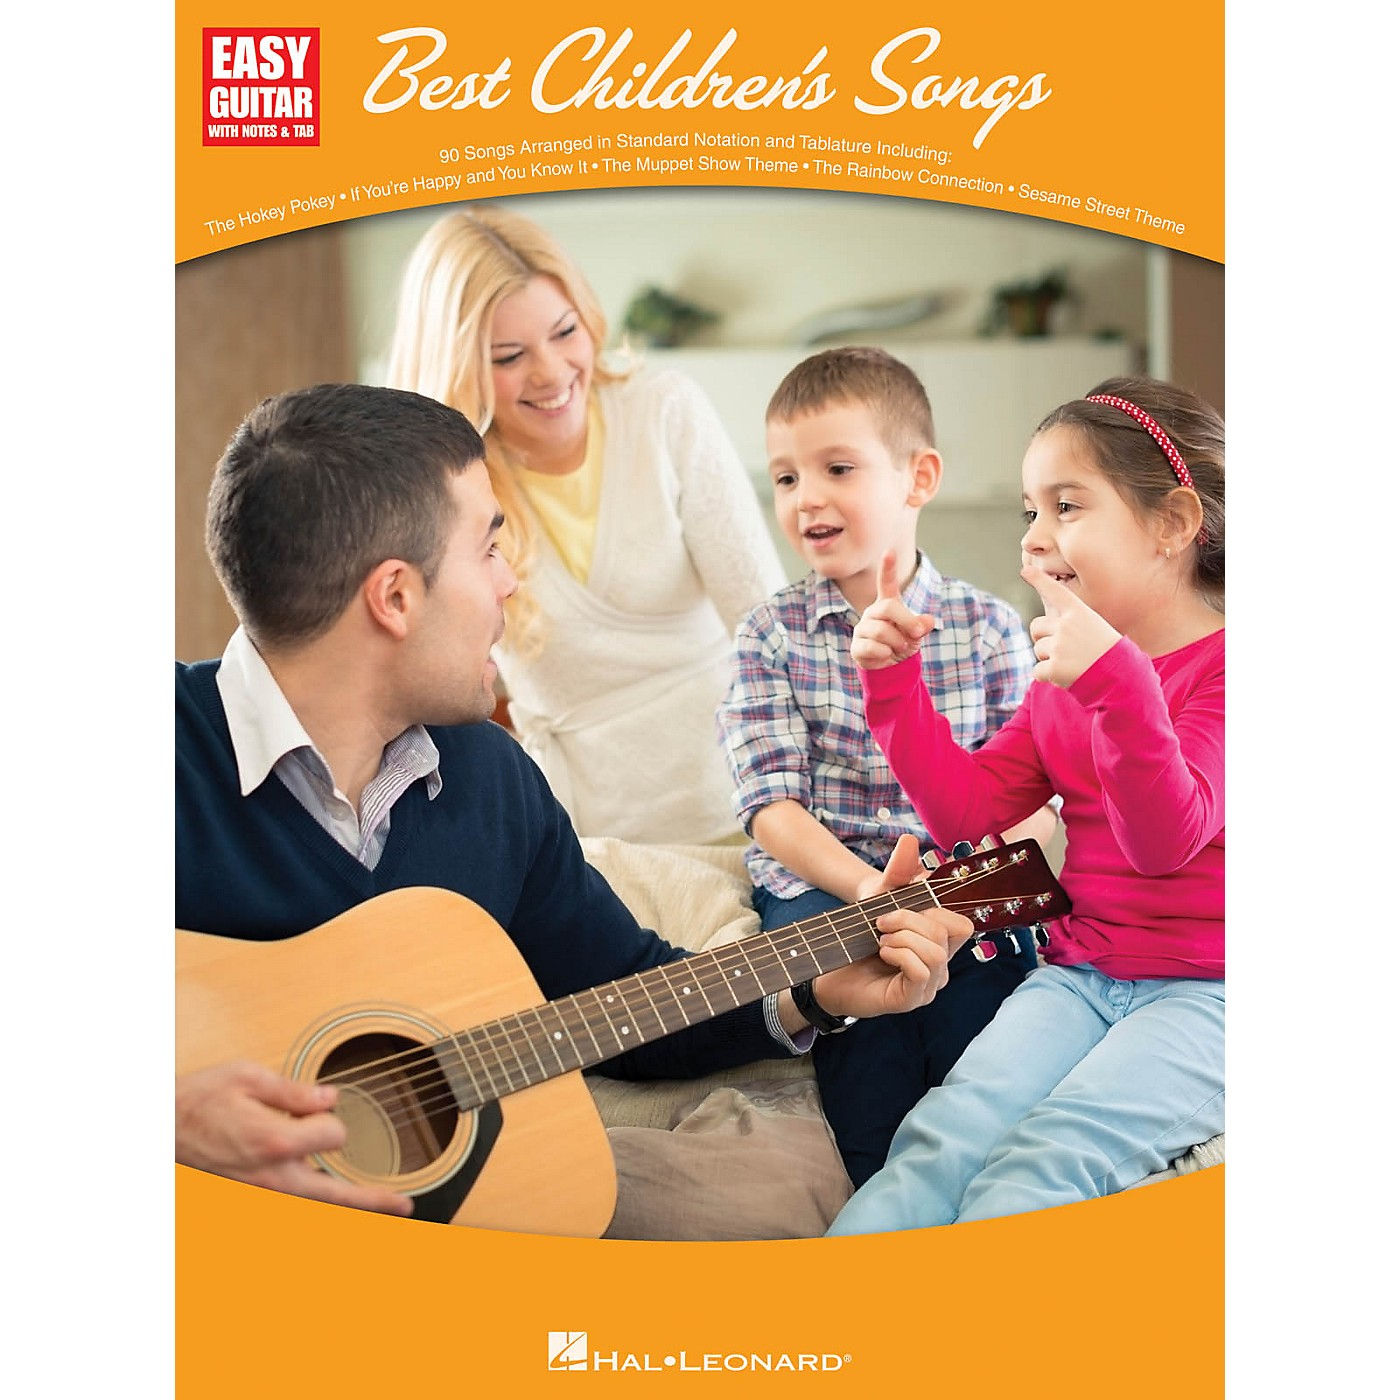 Hal Leonard Best Children's Songs (Easy Guitar with Notes & Tab) Easy Guitar Series Softcover thumbnail